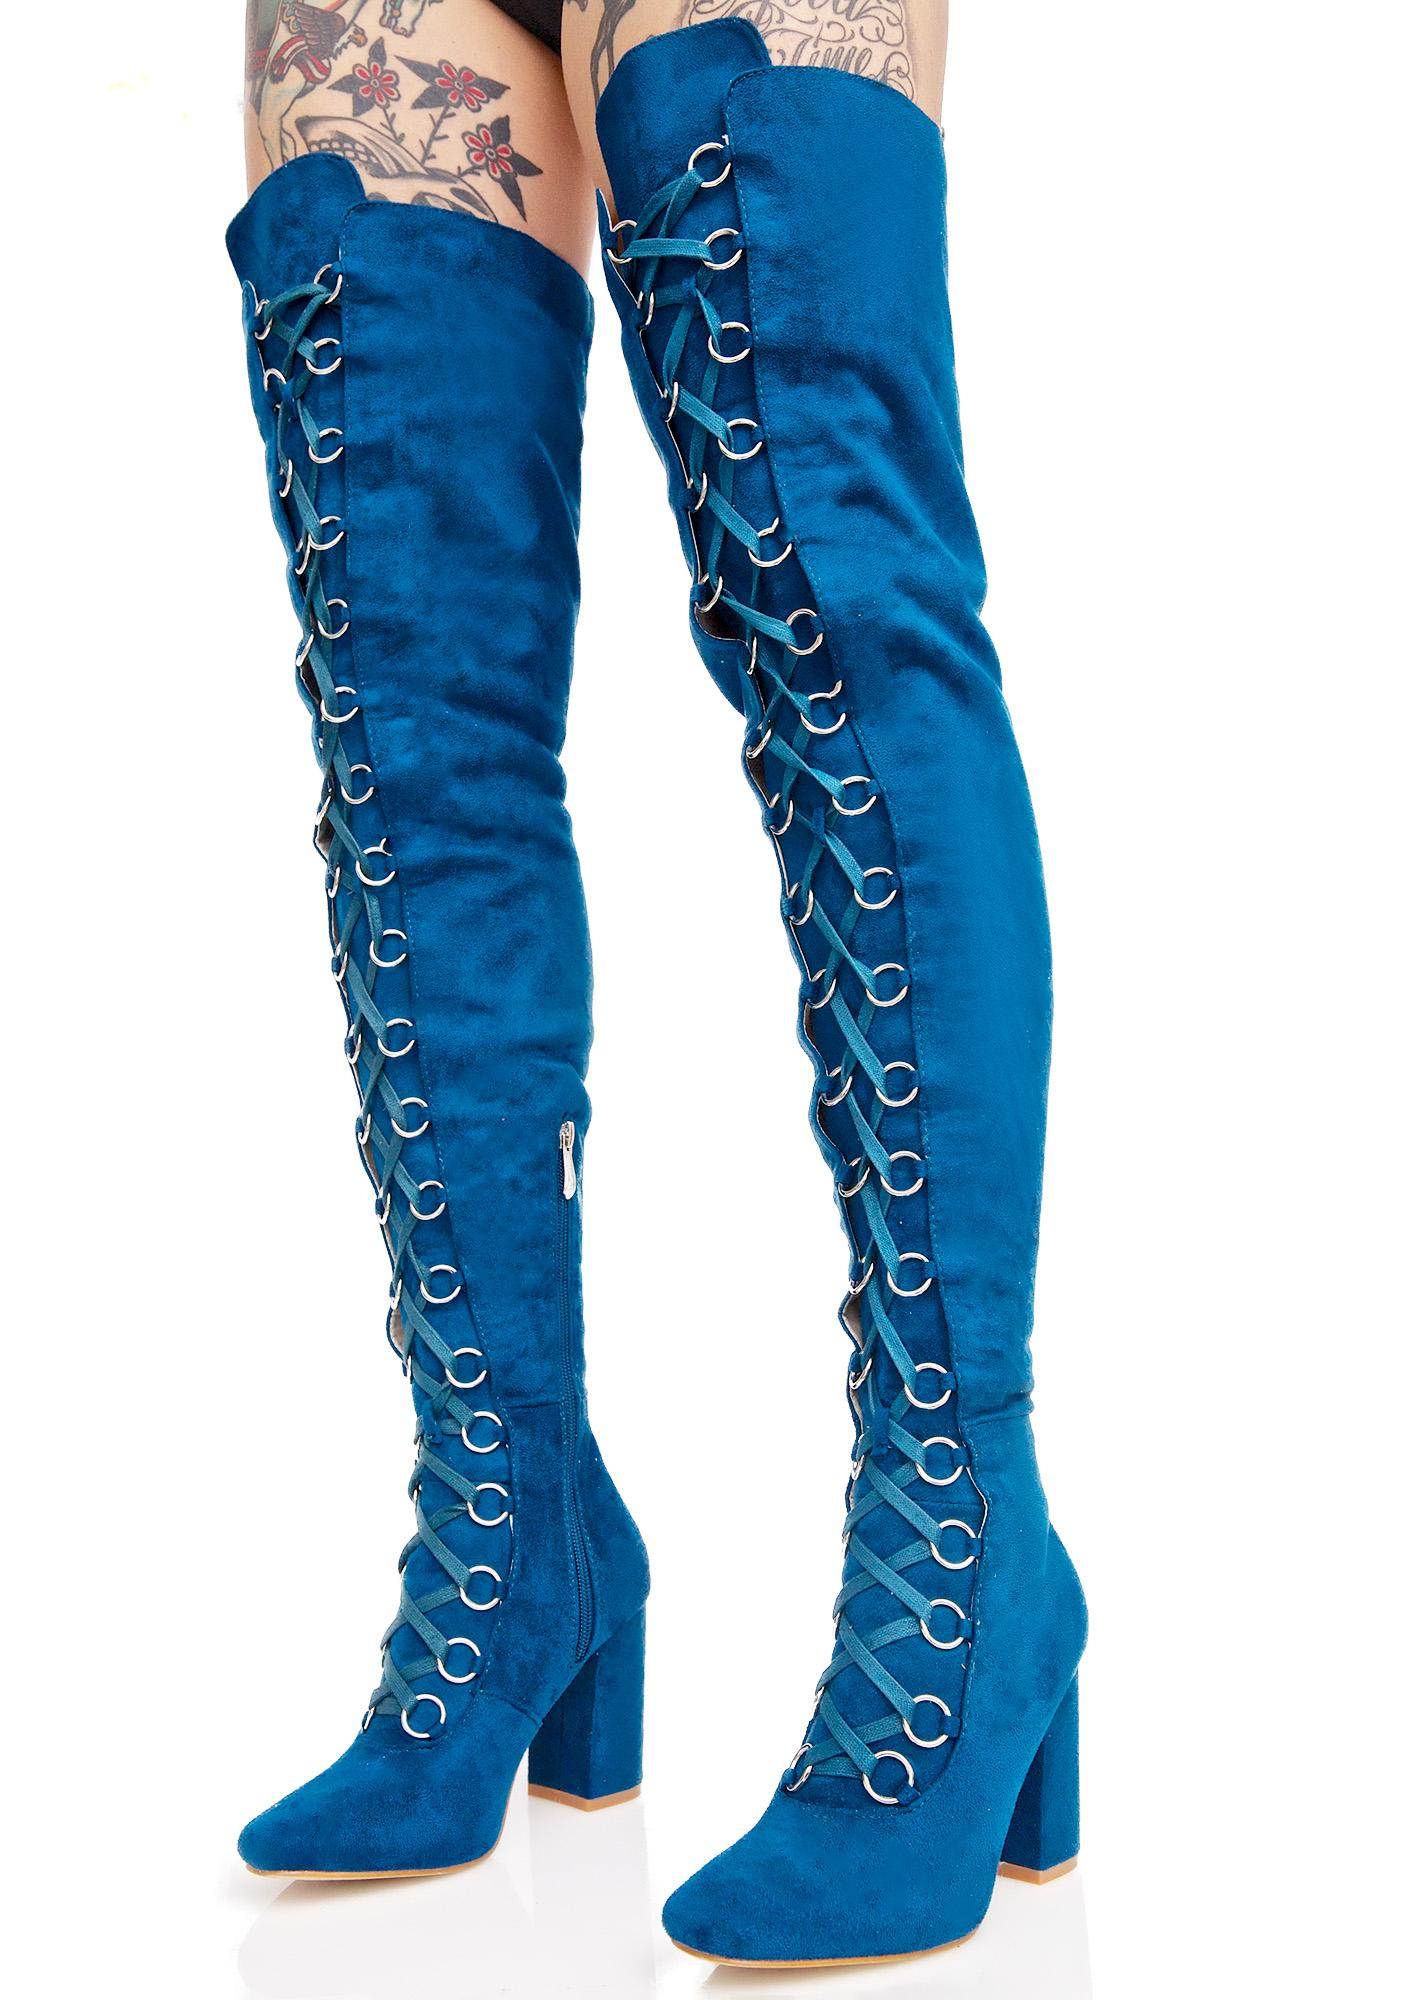 Royal Love Story Thigh-High Boots